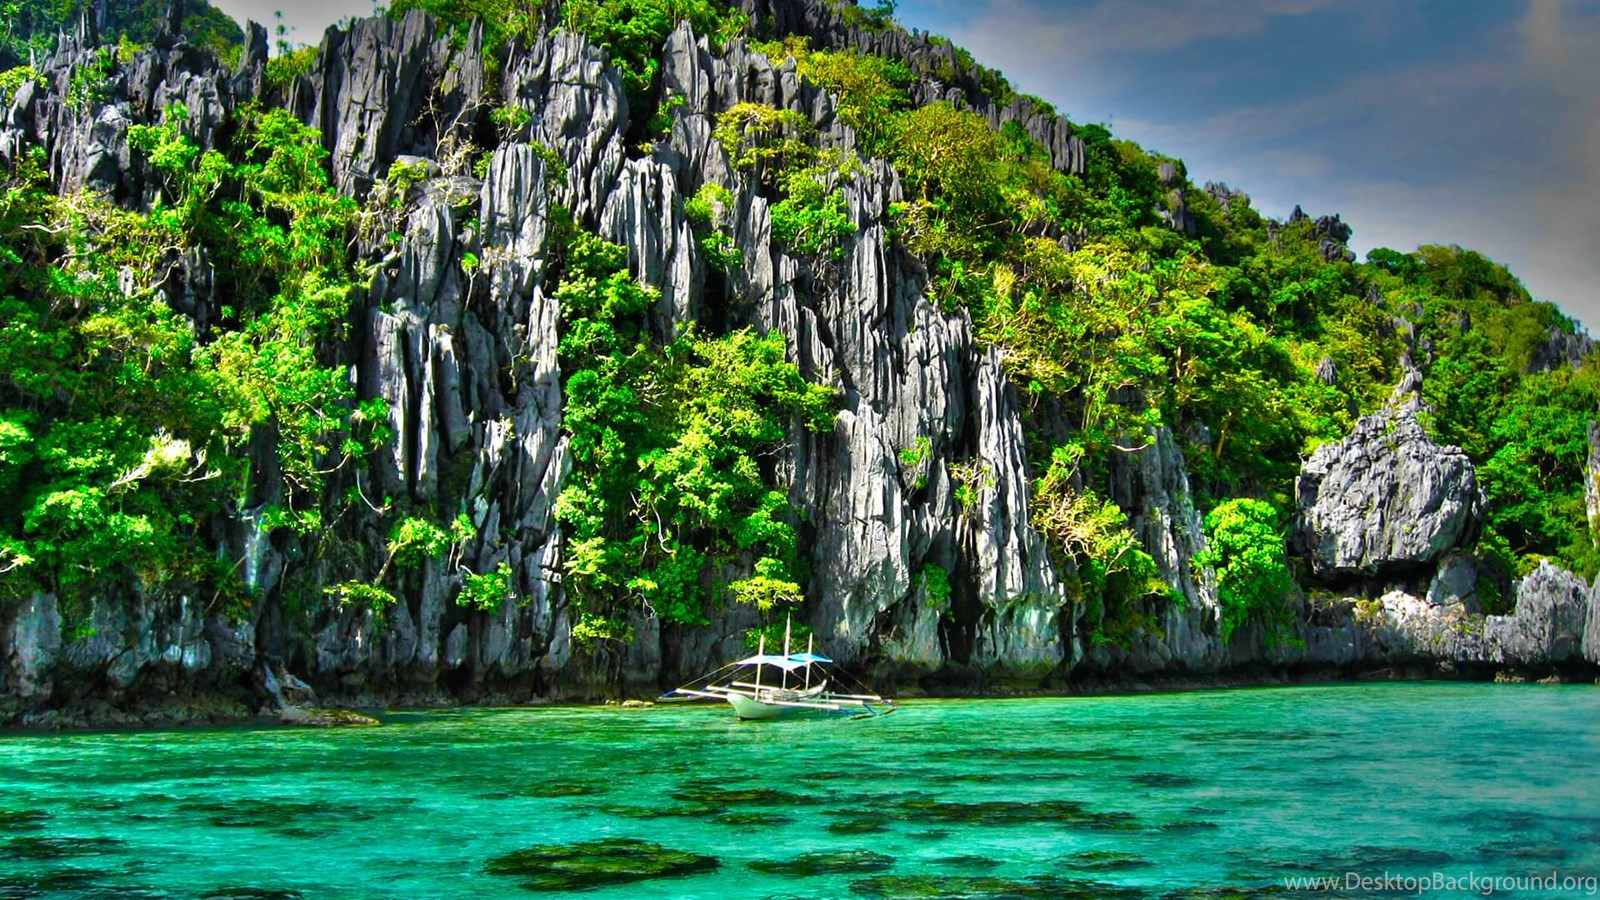 Iphone X 3d Touch Wallpaper El Nido Palawan Philippines Wallpapers Desktop Background